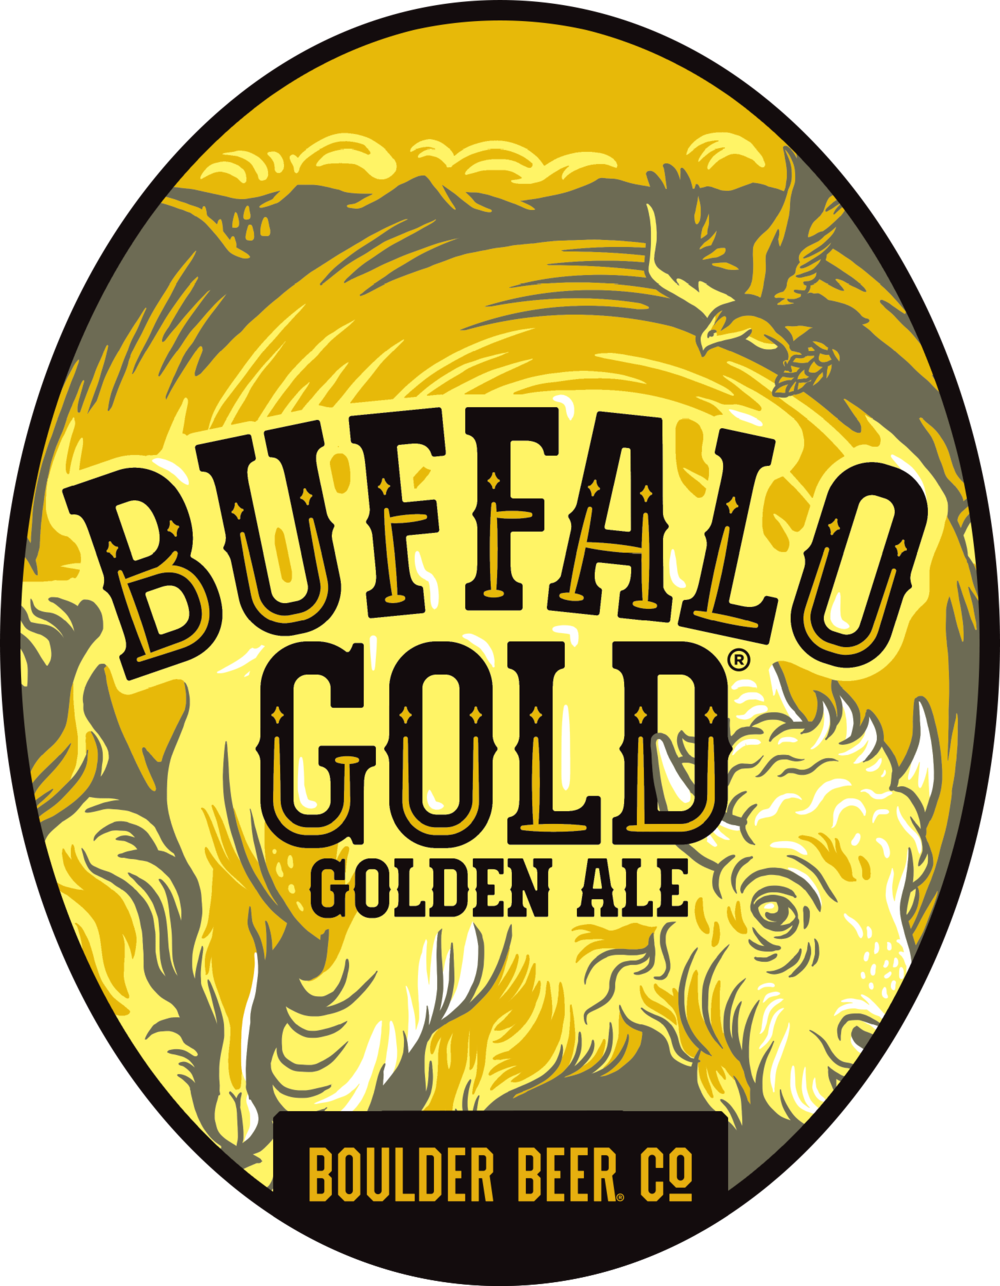 04675-1.4 Boulder Beer Buffalo Gold Oval.png